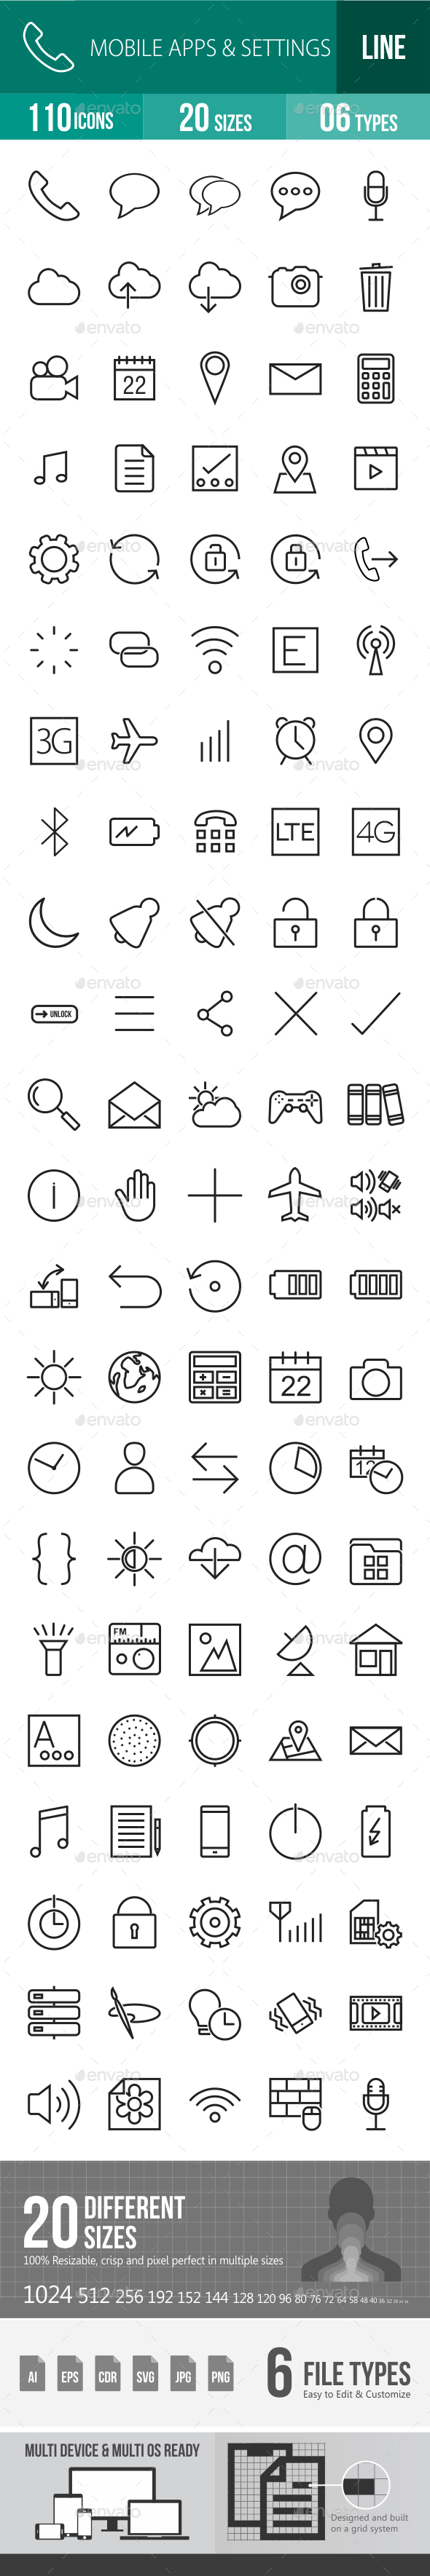 Mobile Apps & Settings Line Icons - Icons